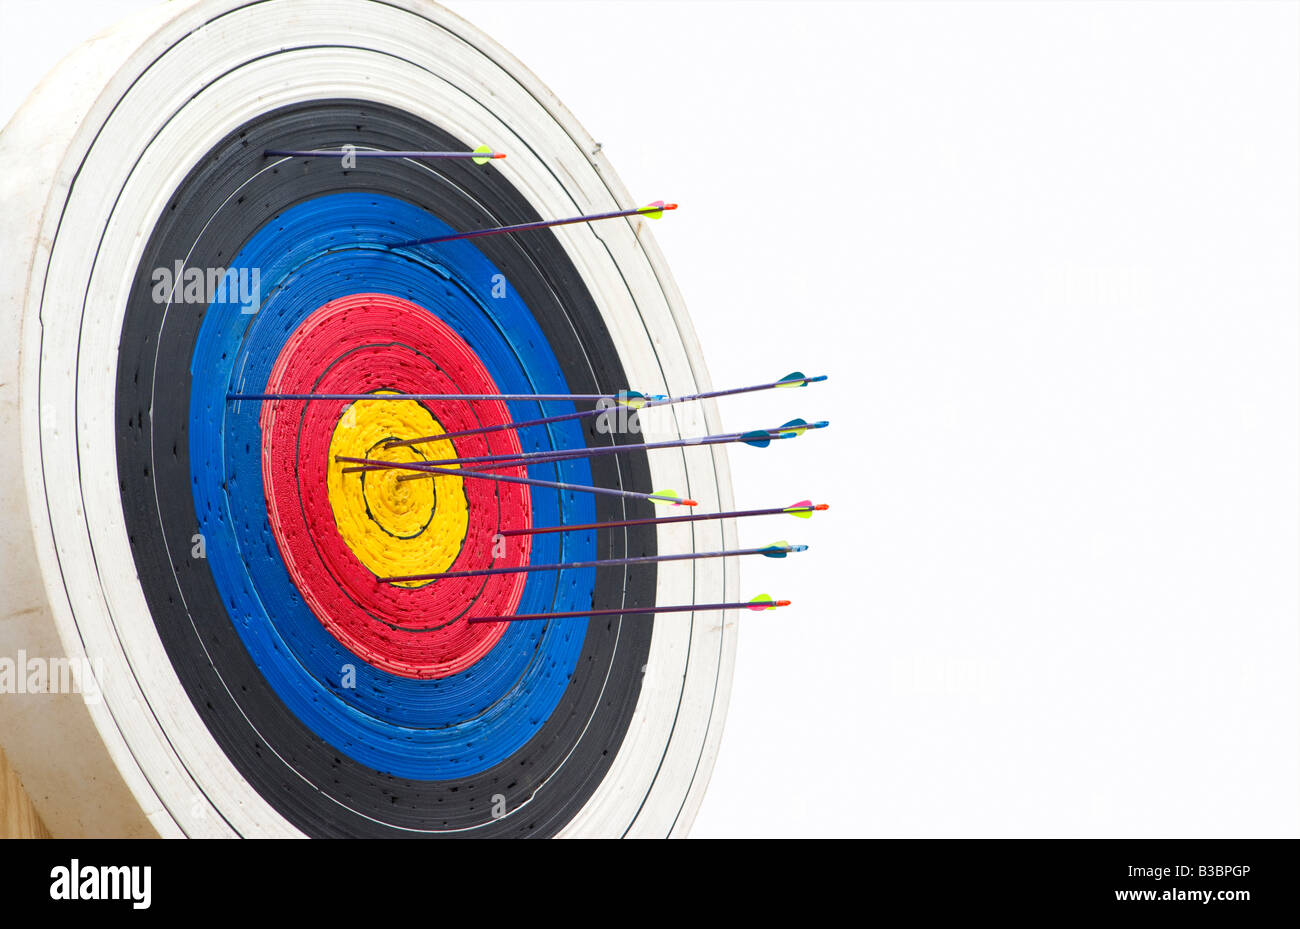 great image of a archery target full of arrows - Stock Image